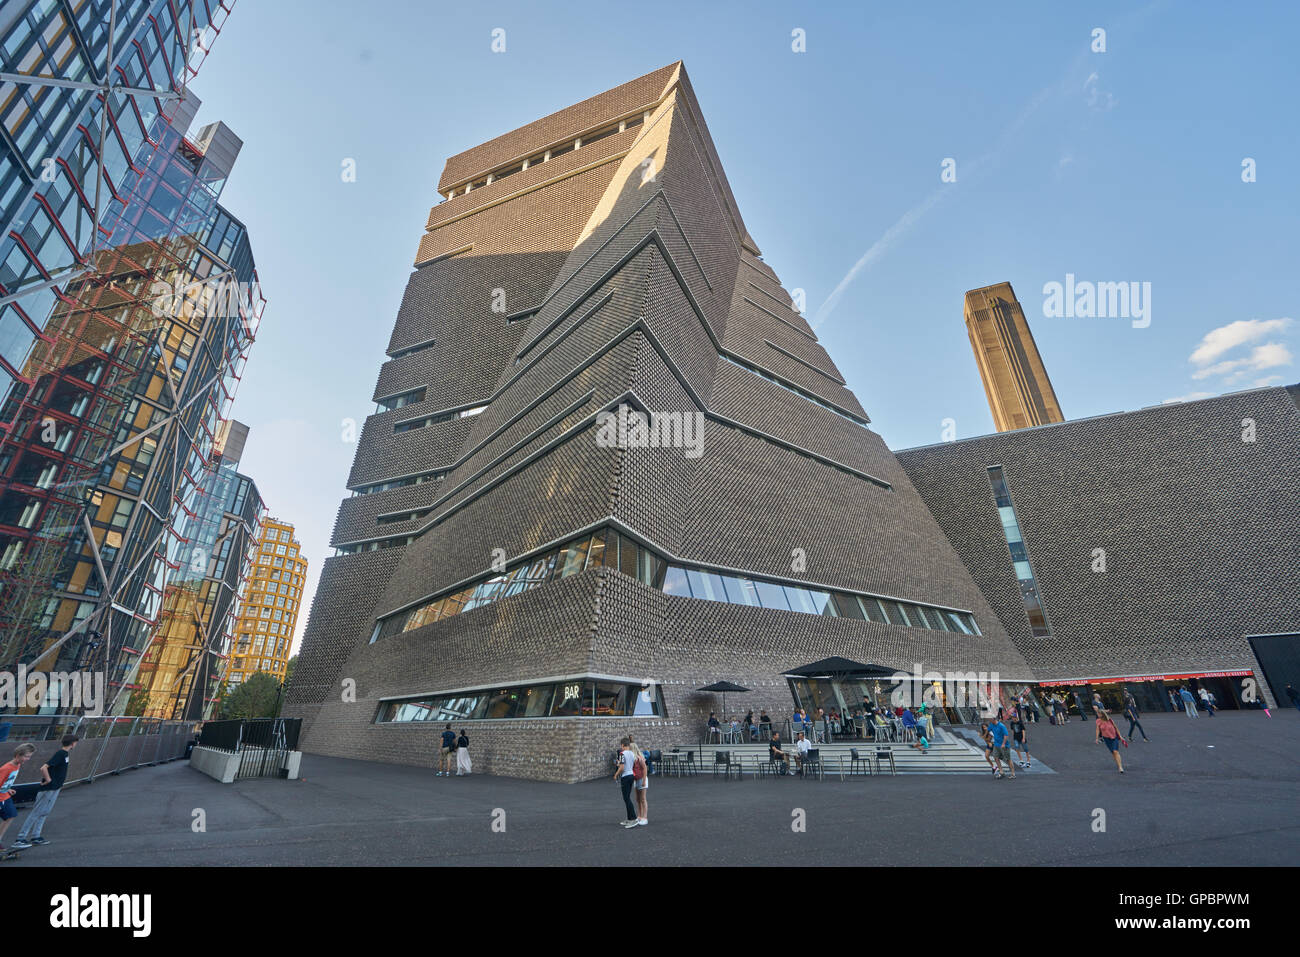 The Switch House, Tate Modern, London - Stock Image